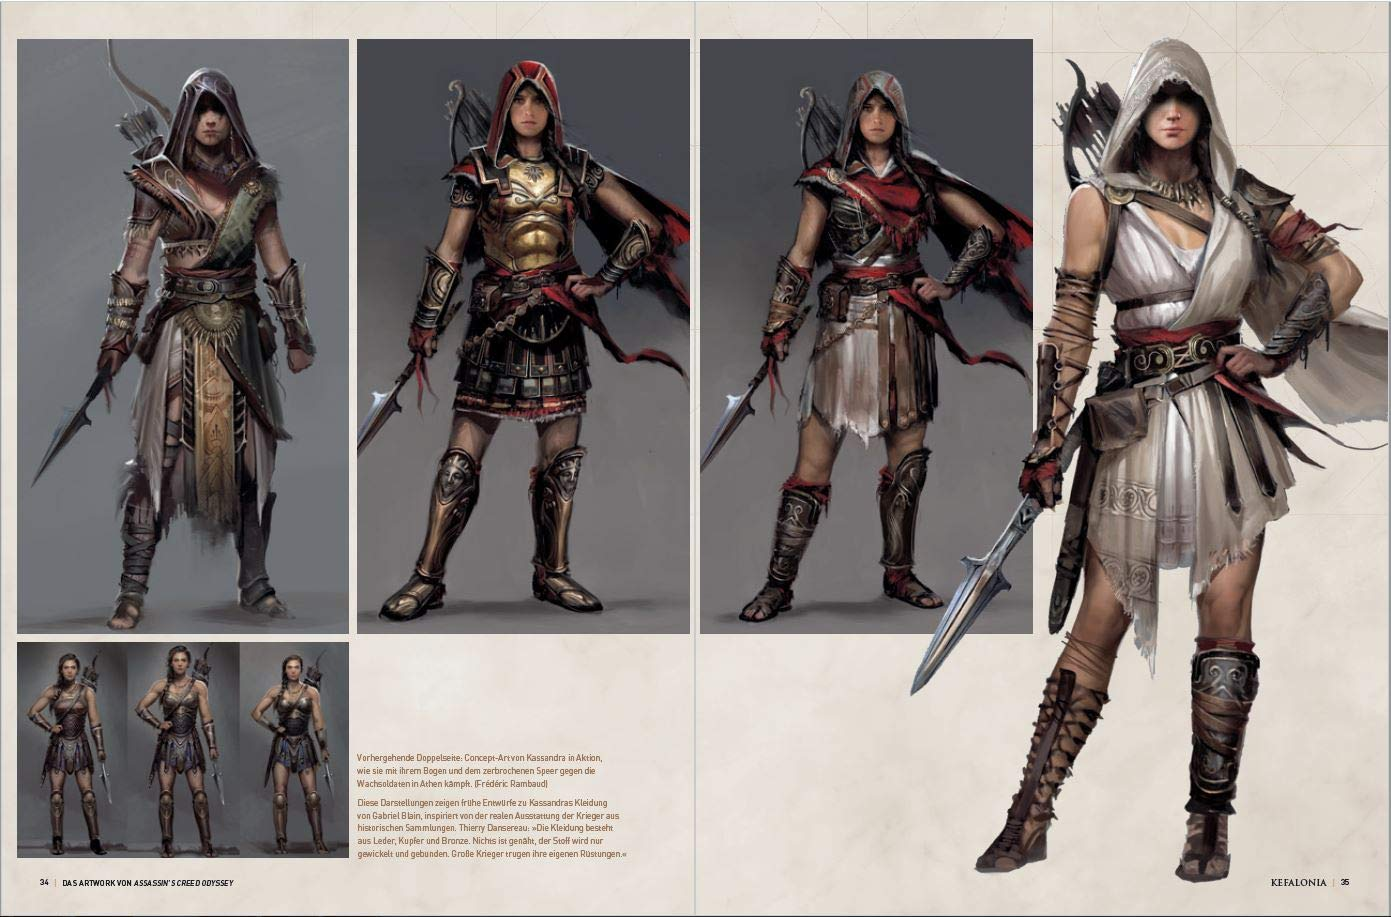 Lewis K Artwork Von Assassin S Creed Odyssey Amazon Co Uk Lewis Kate 9783742308252 Books